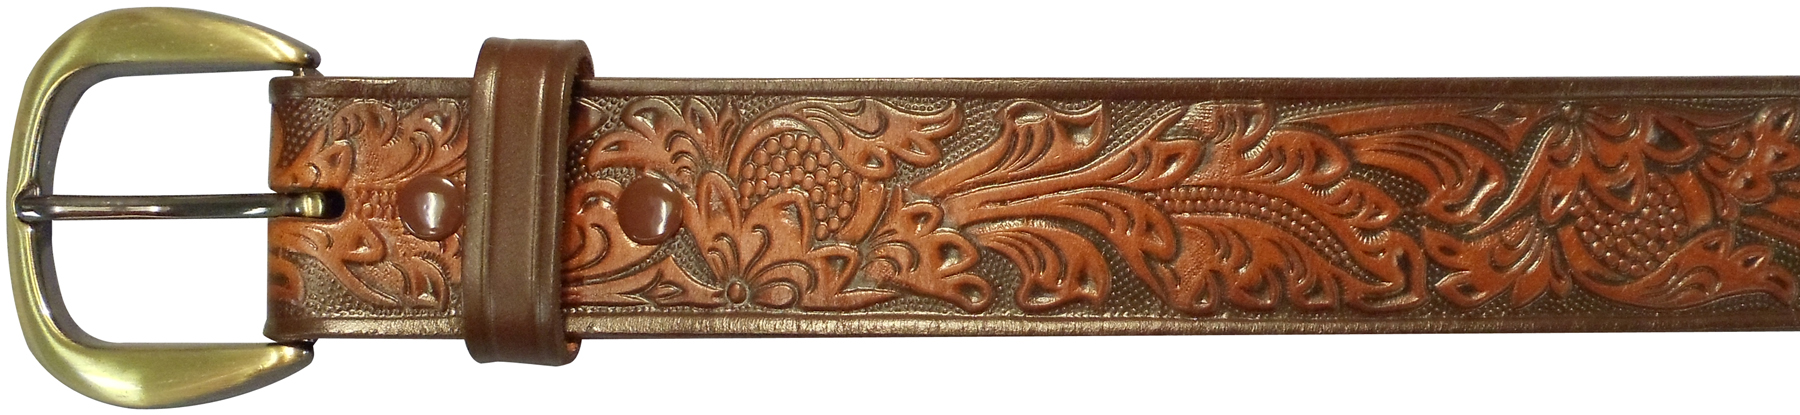 "10610110238 - 38"" Brown Leather Embossed Belt"